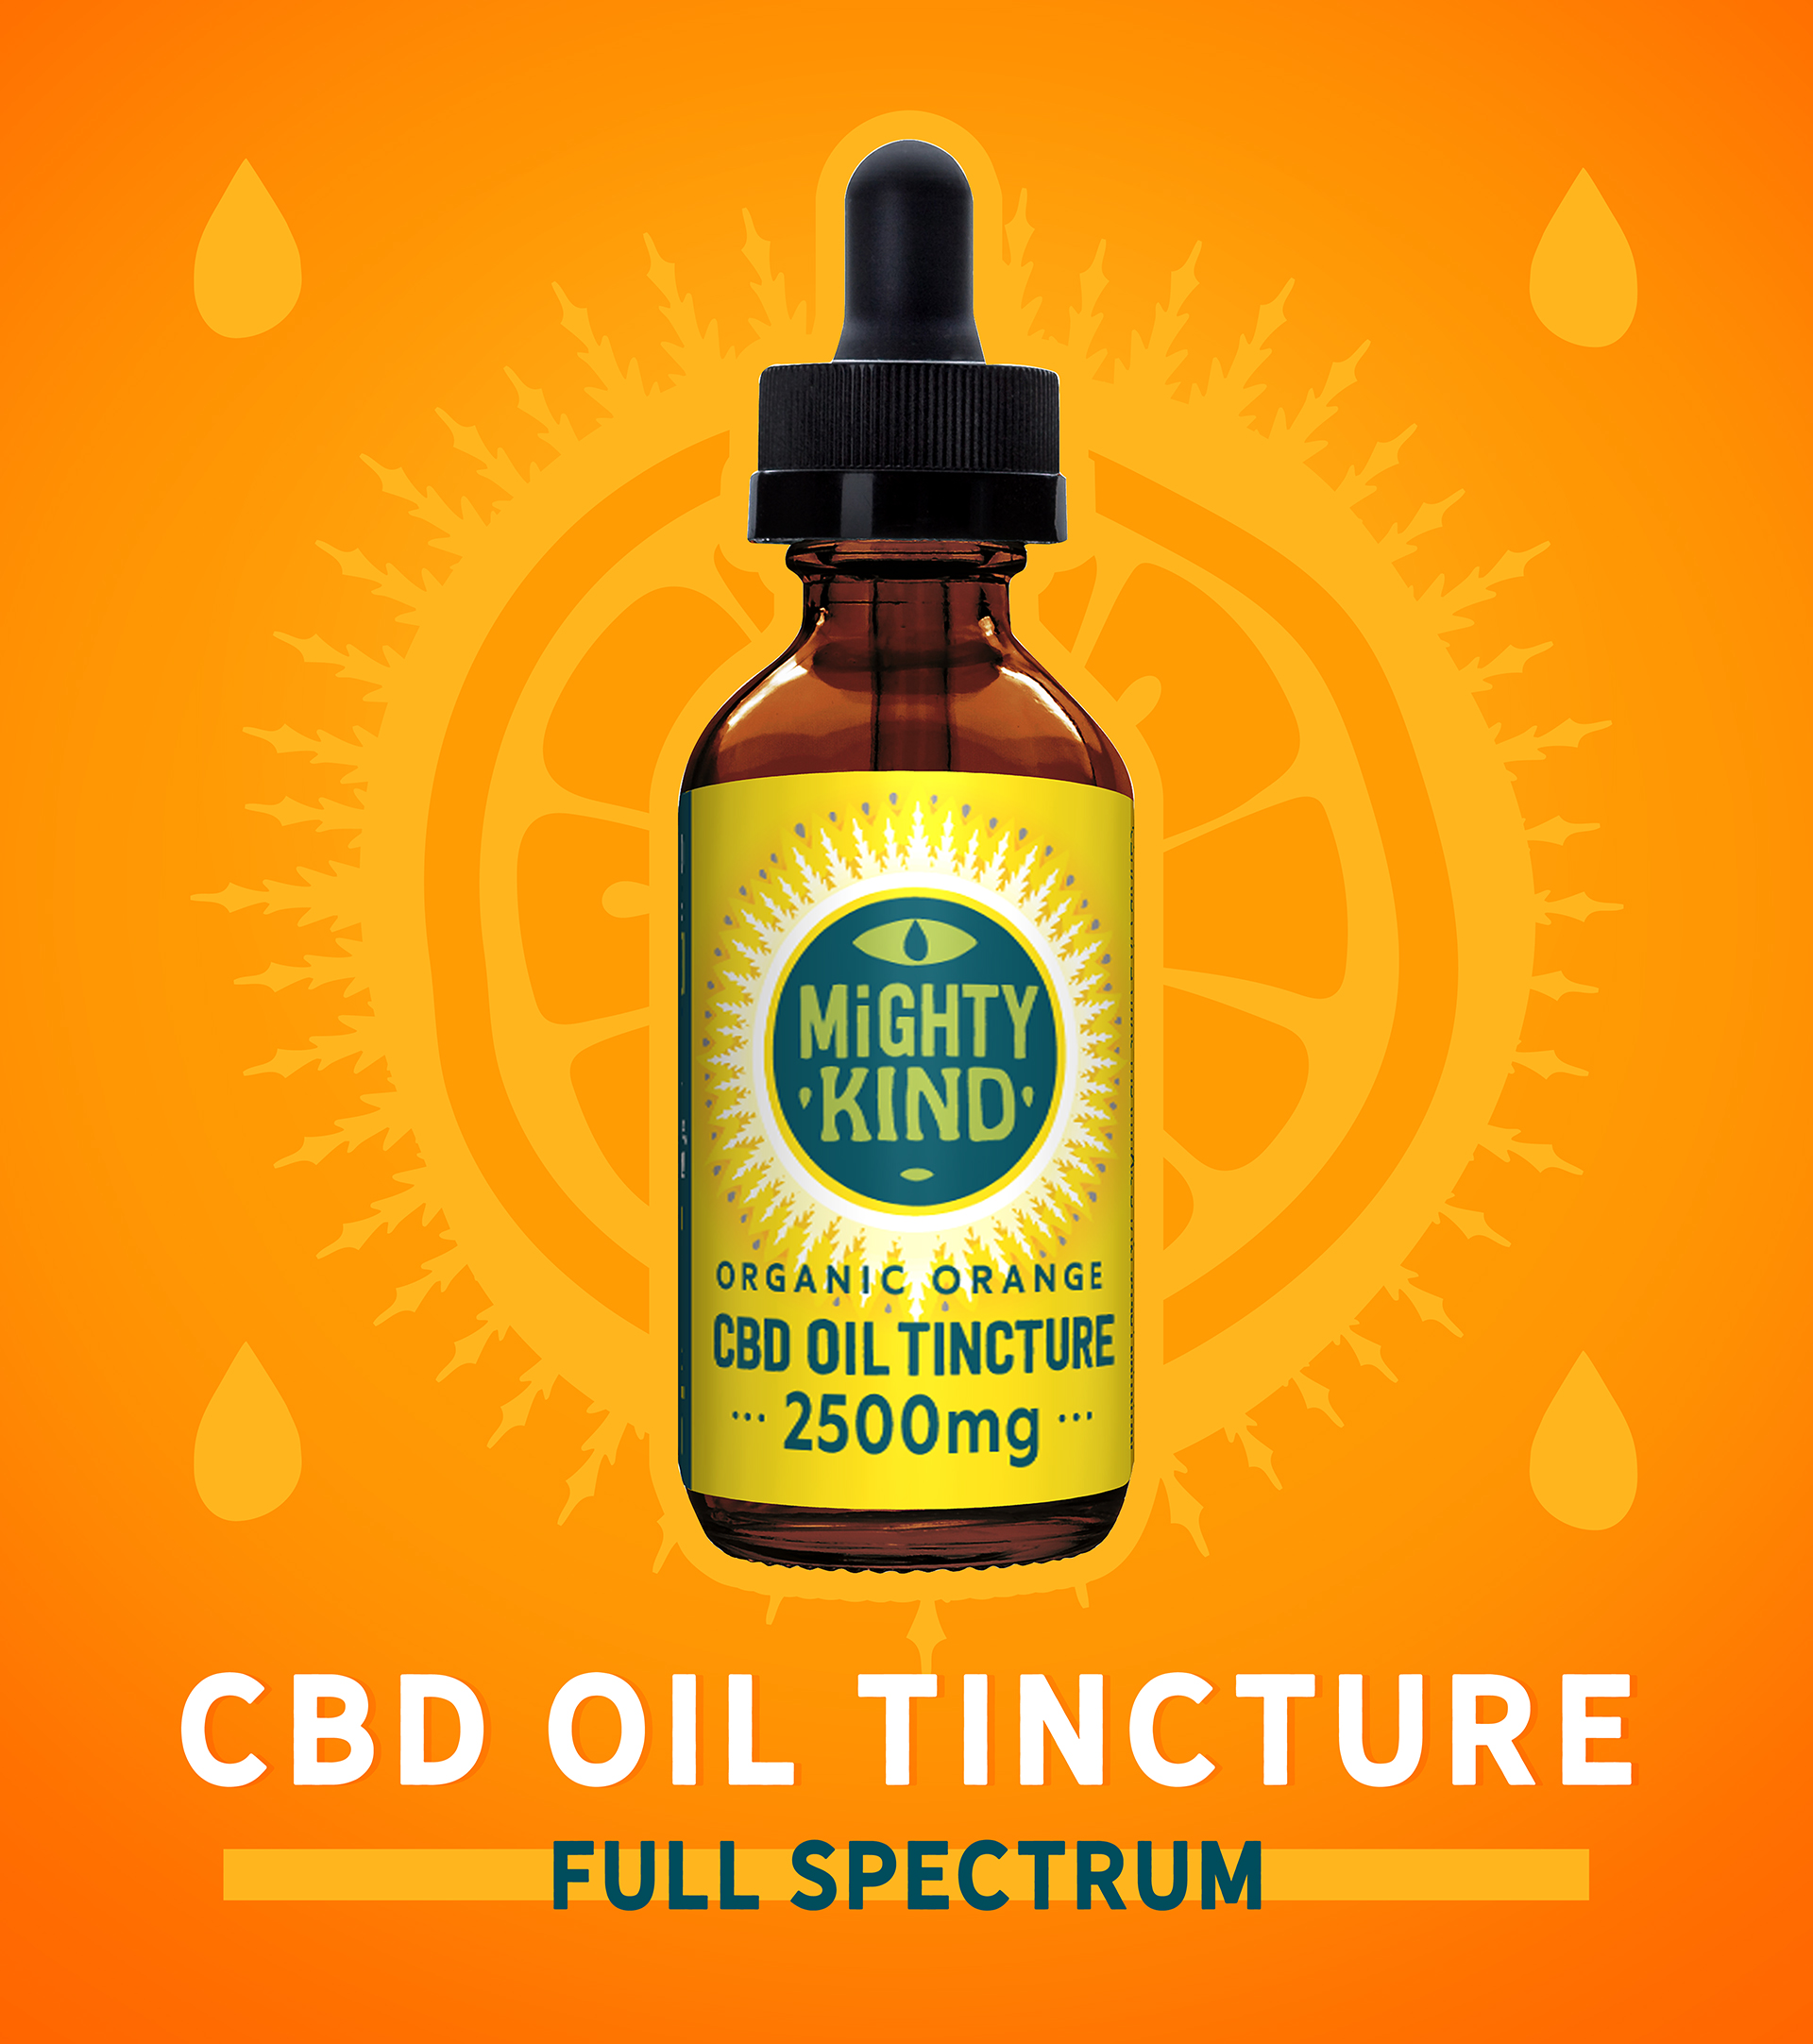 Mighty Kind CBD Oil Tincture